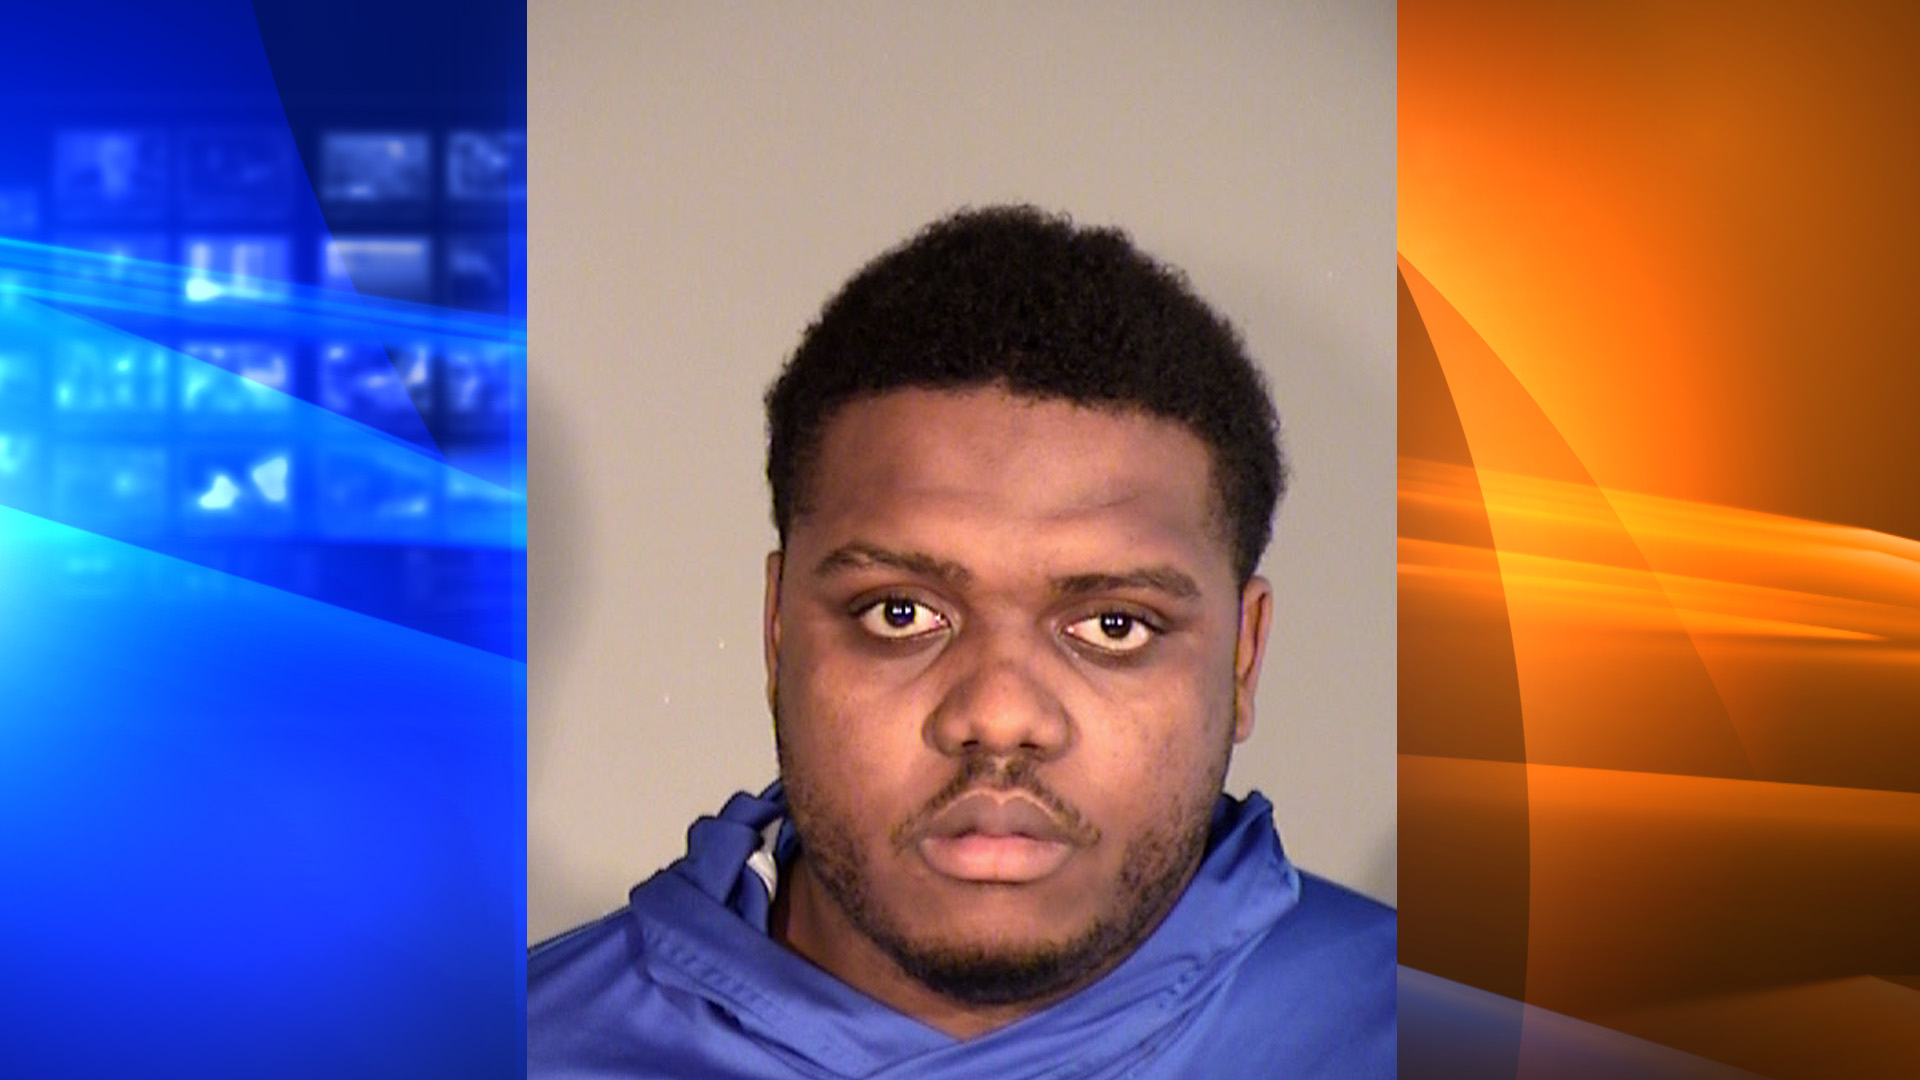 Davante Bell is seen in this booking photo on Sept. 25, 2019 from the Thousand Oaks Police Department.